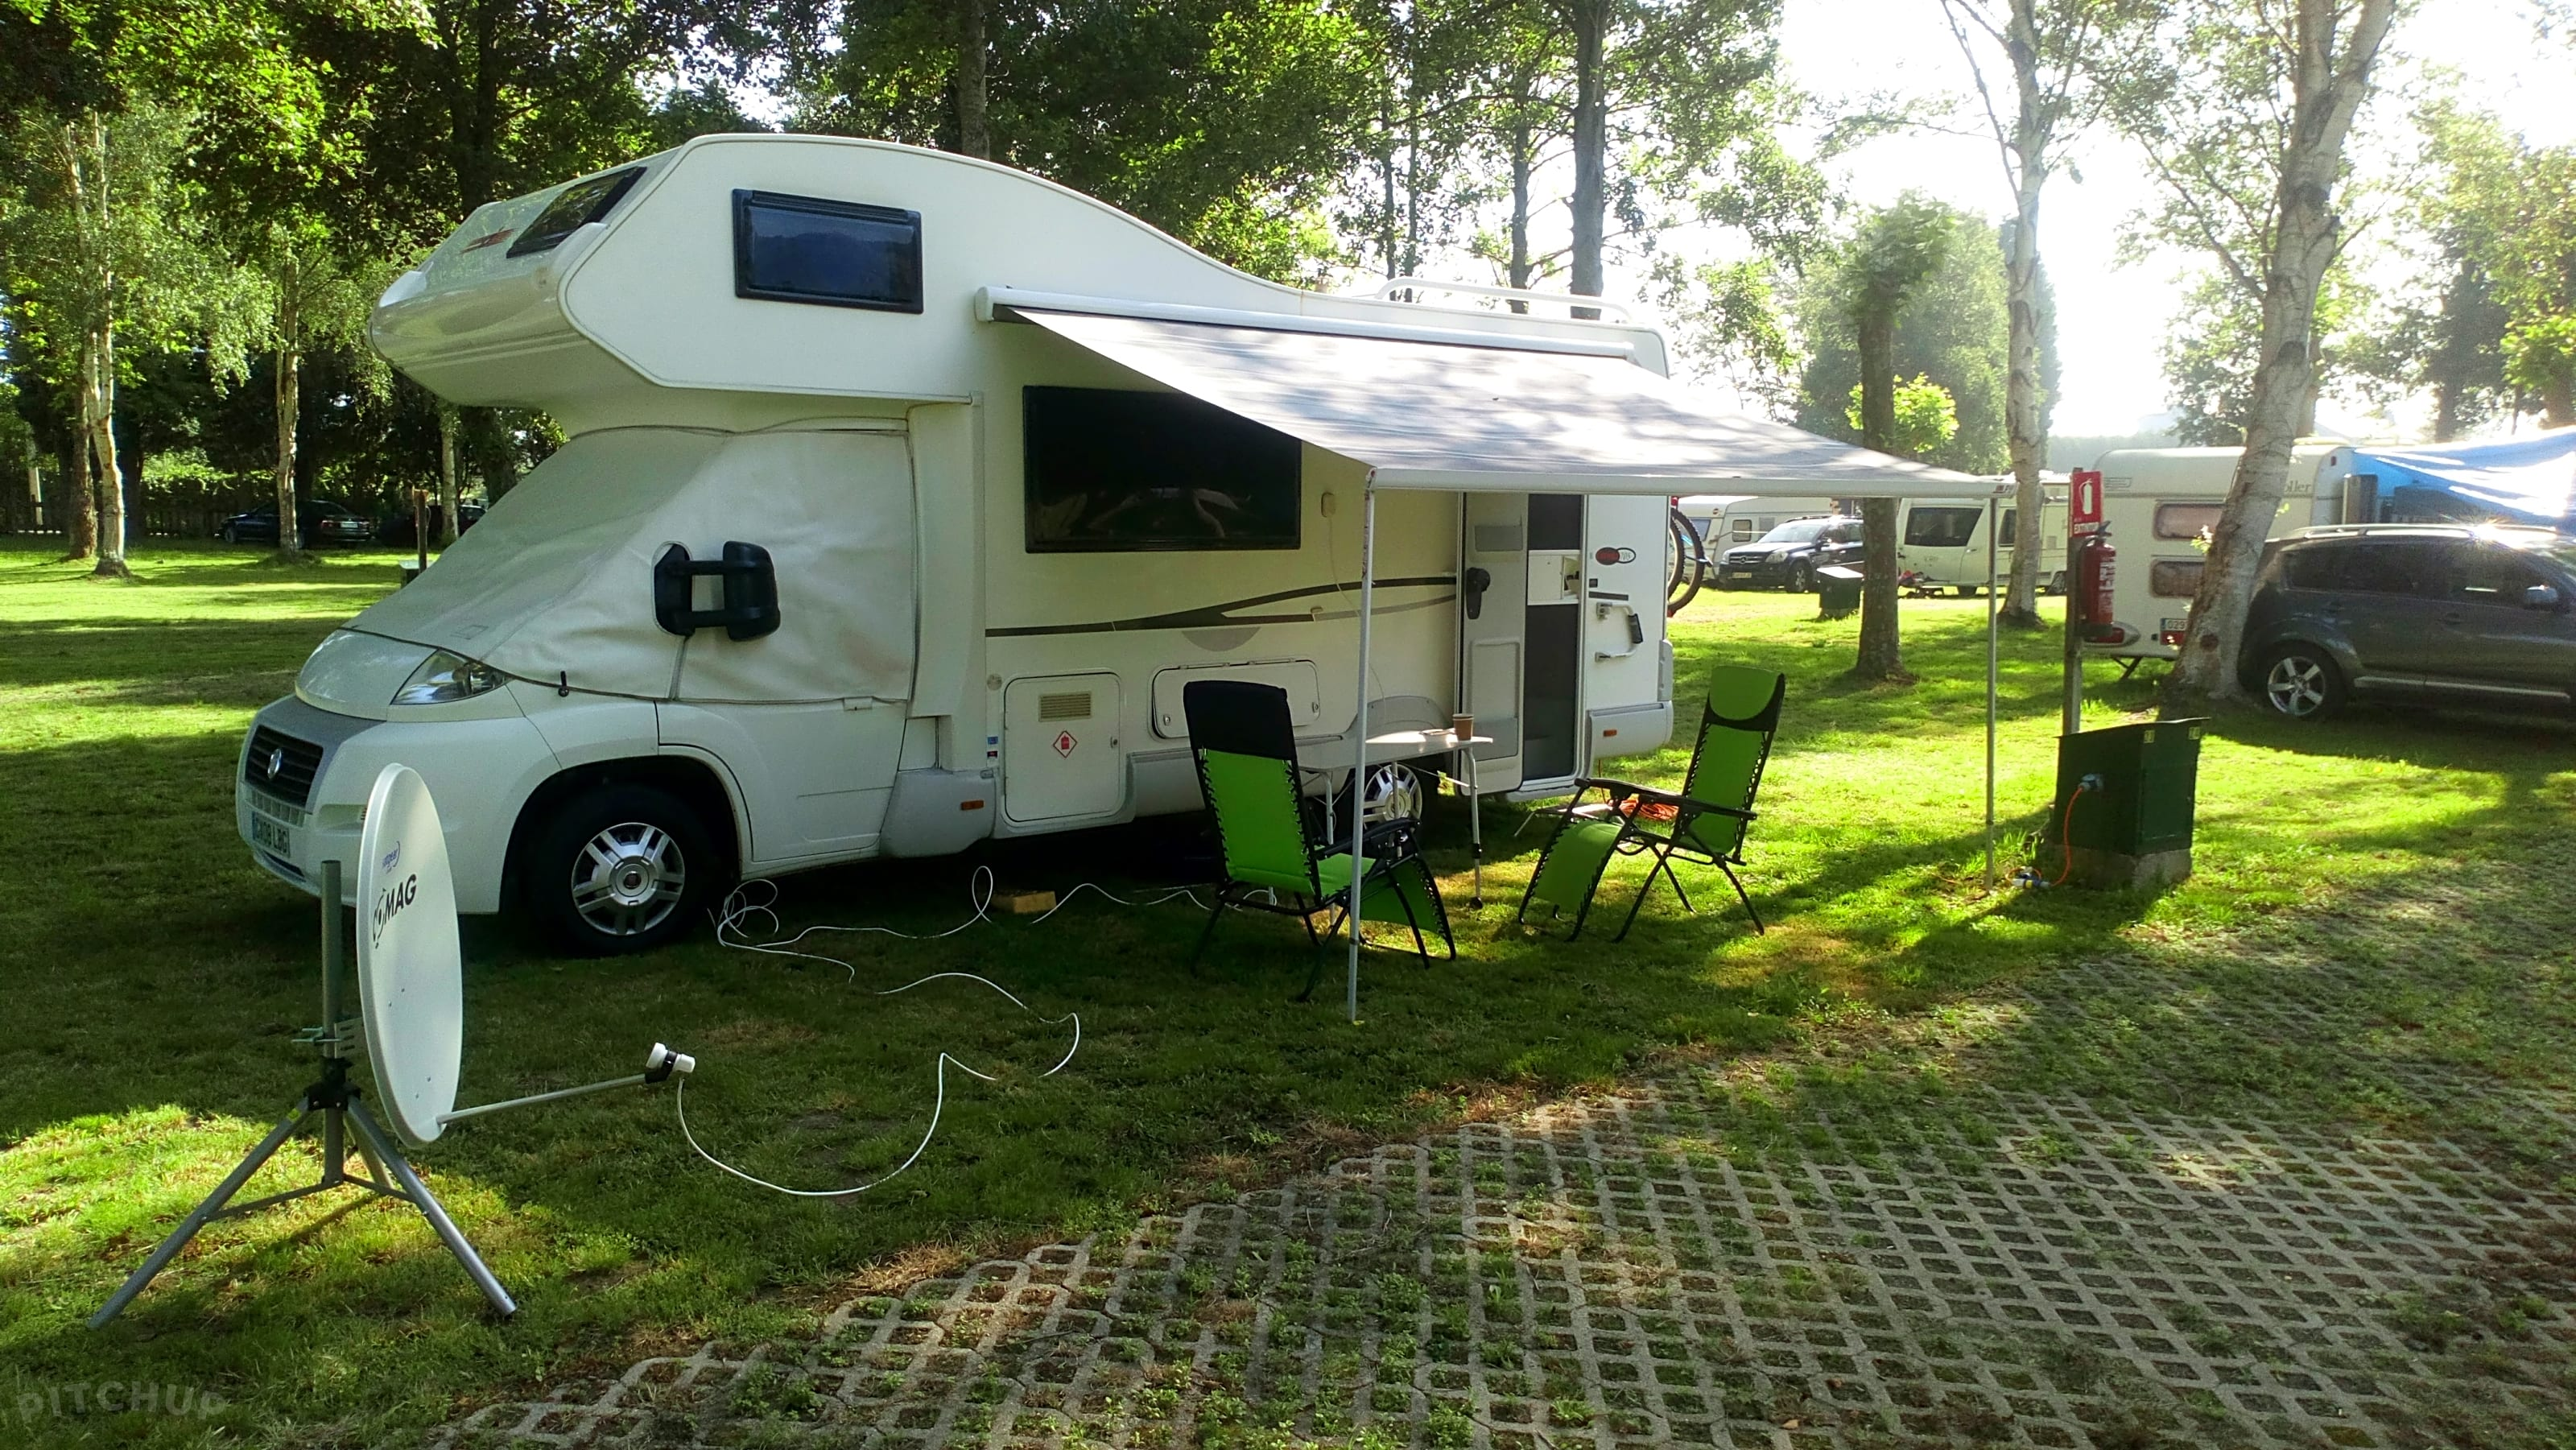 Camping A Grandella, El Franco - Updated 2019 prices - Pitchup®